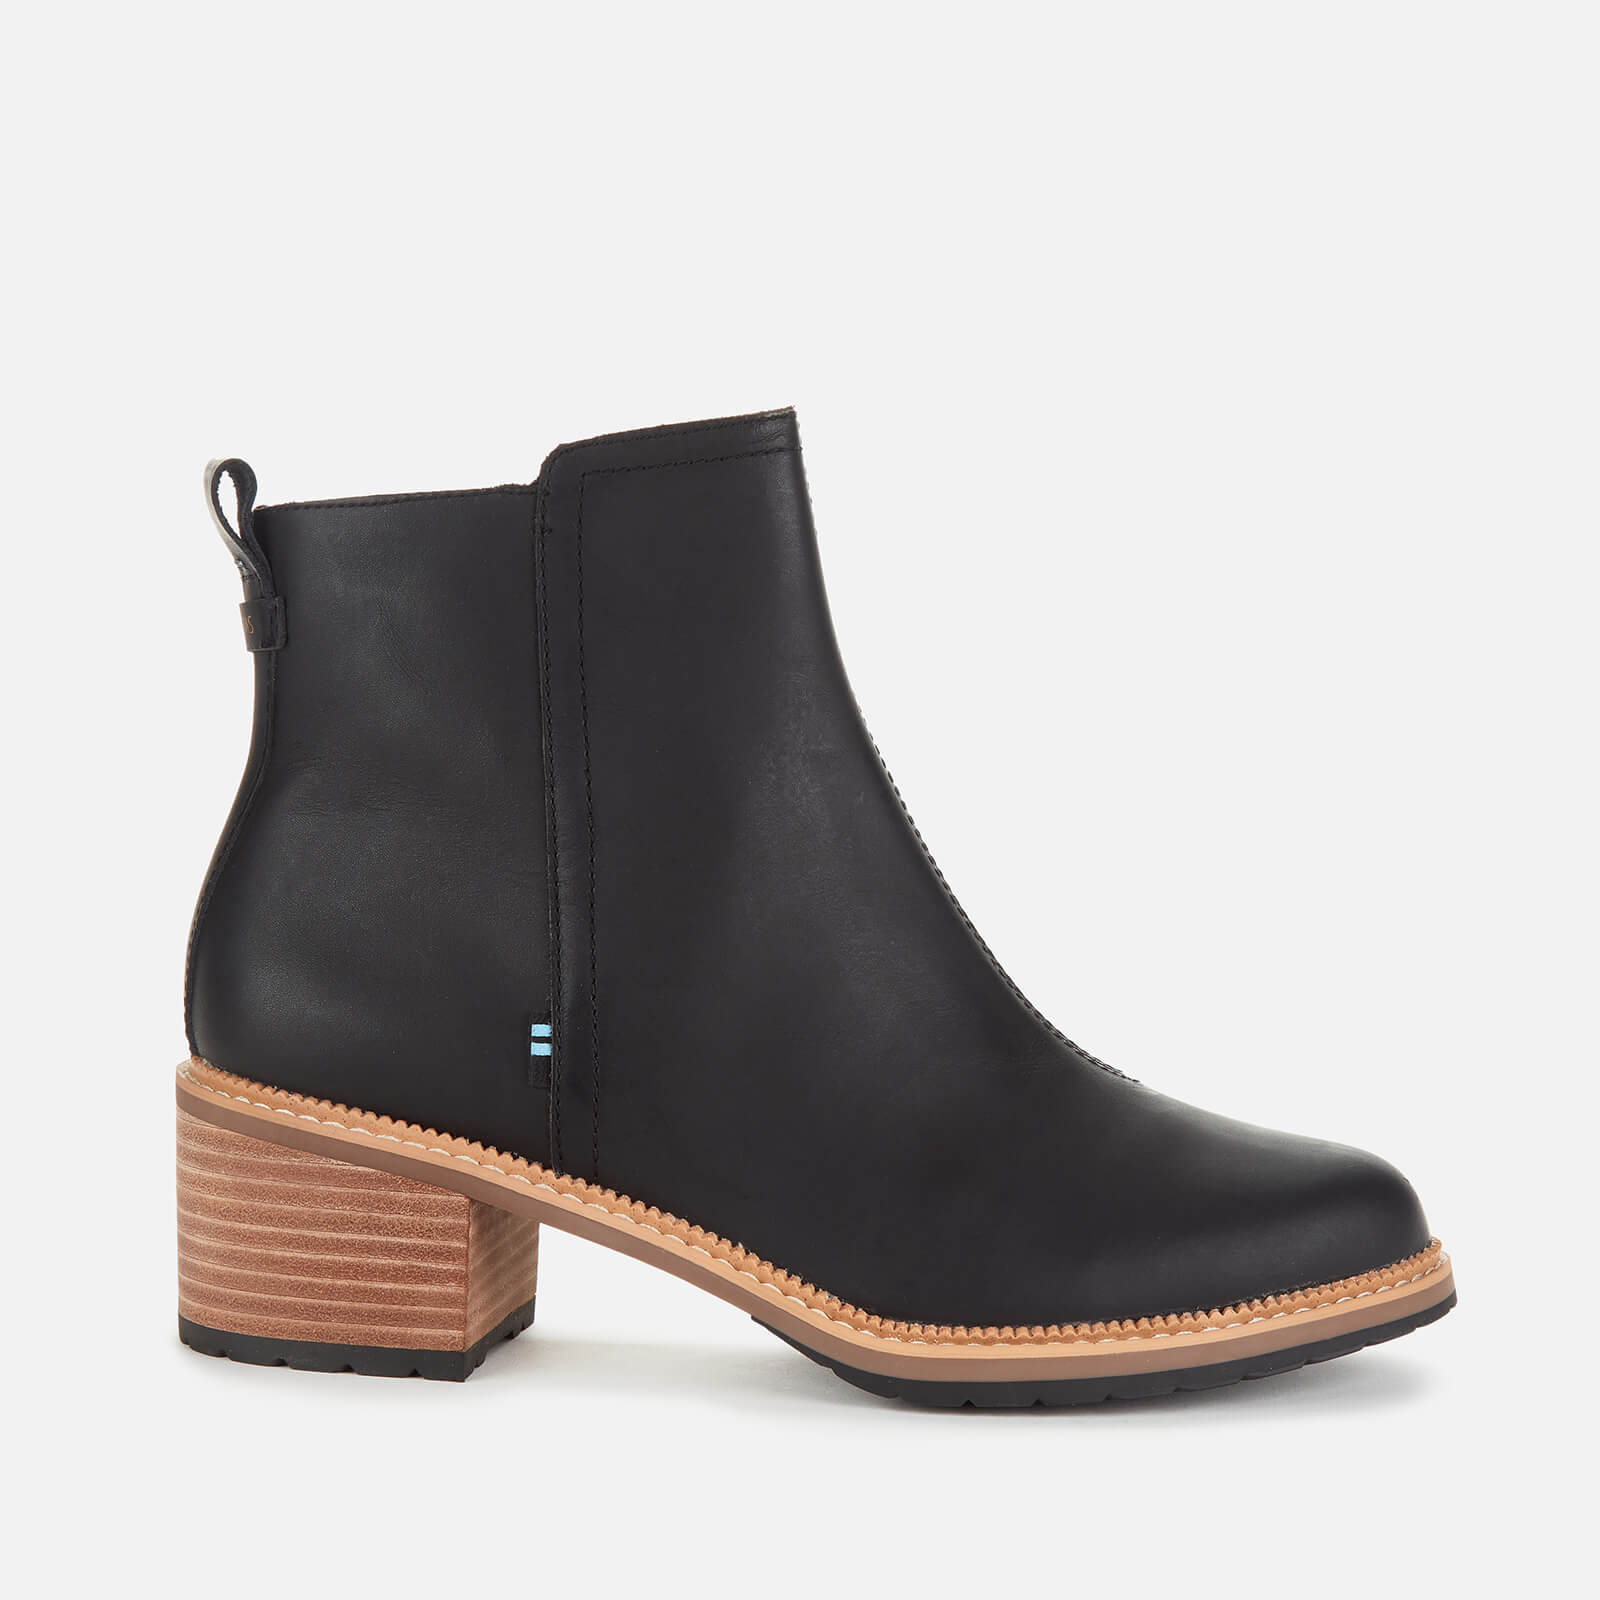 Toms Women's Marina Leather Heeled Ankle Boots - Black - Uk 3